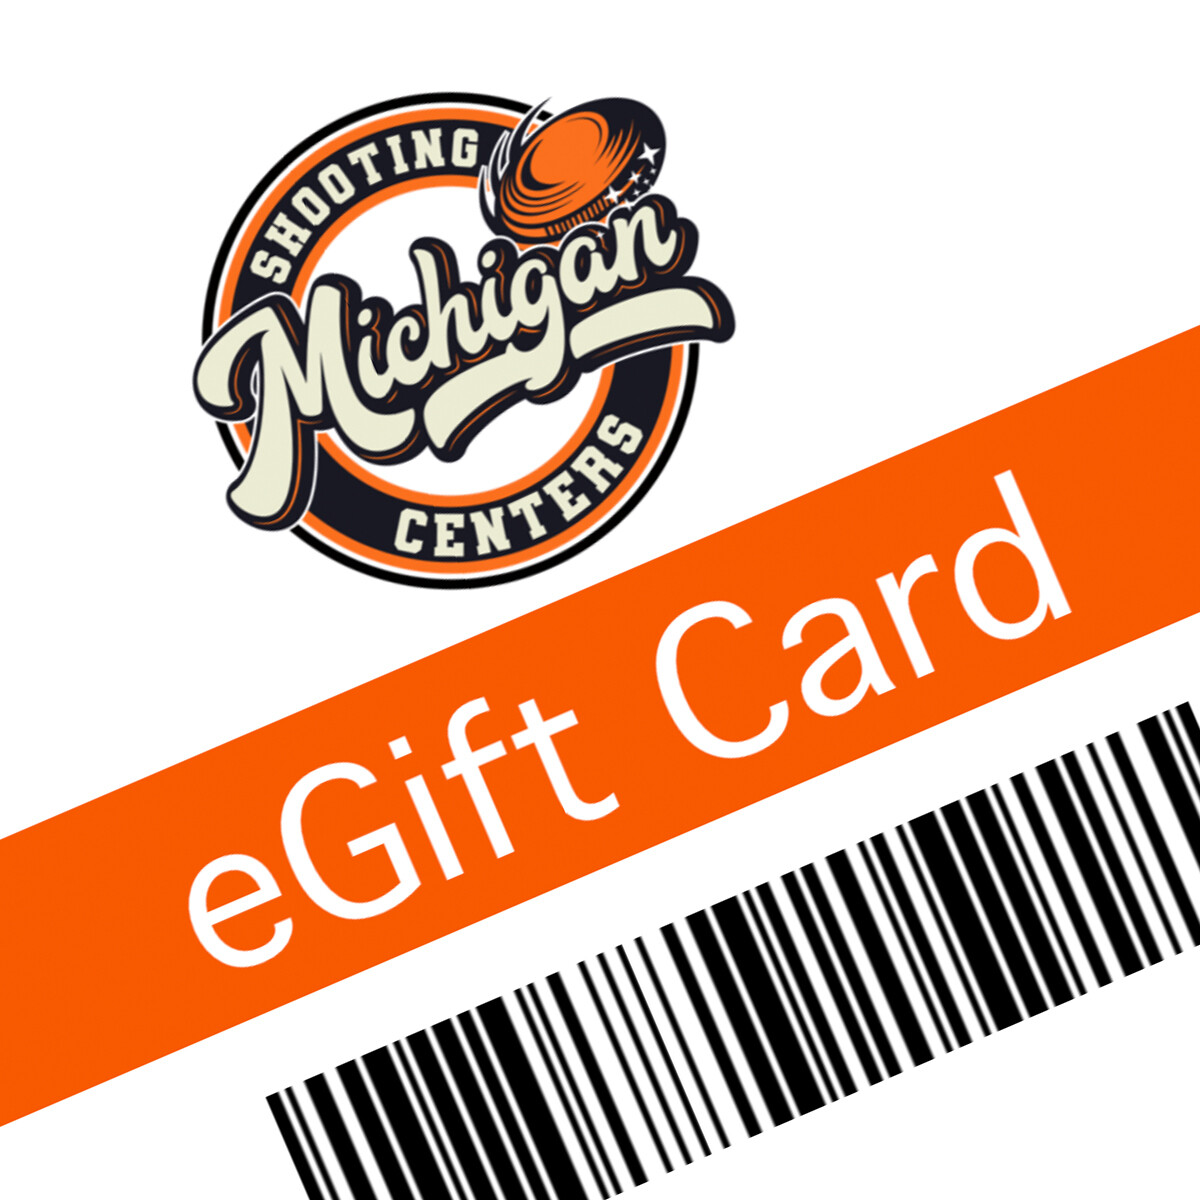 Michigan Shooting Centers Gift Card